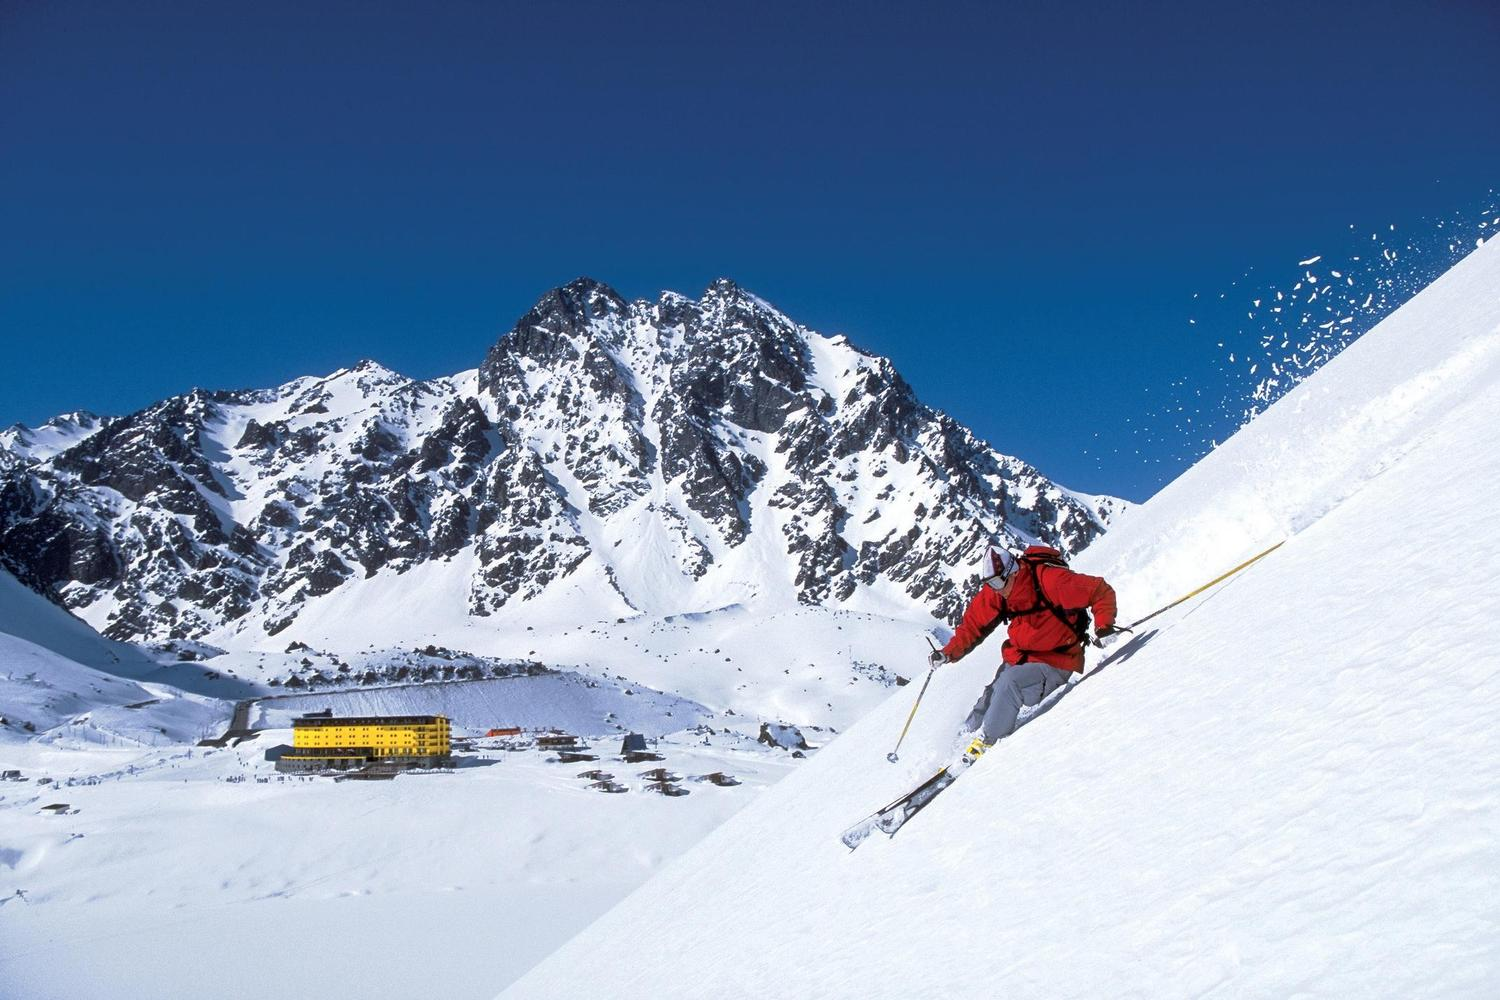 Skiing the steep sides of the Portillo resort